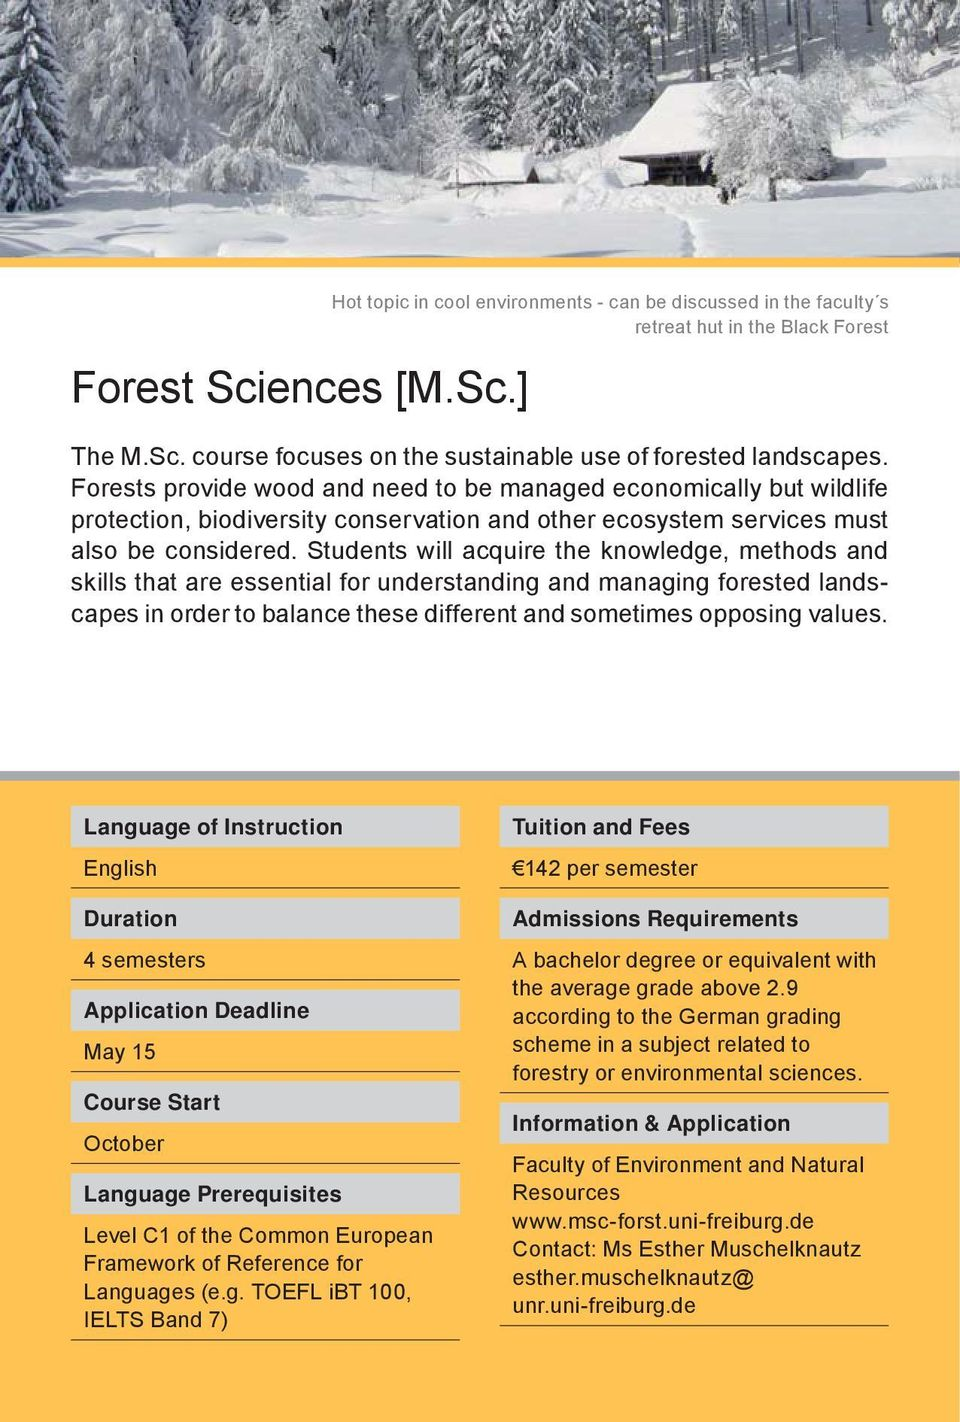 Students will acquire the knowledge, methods and skills that are essential for understanding and managing forested landscapes in order to balance these different and sometimes opposing values.